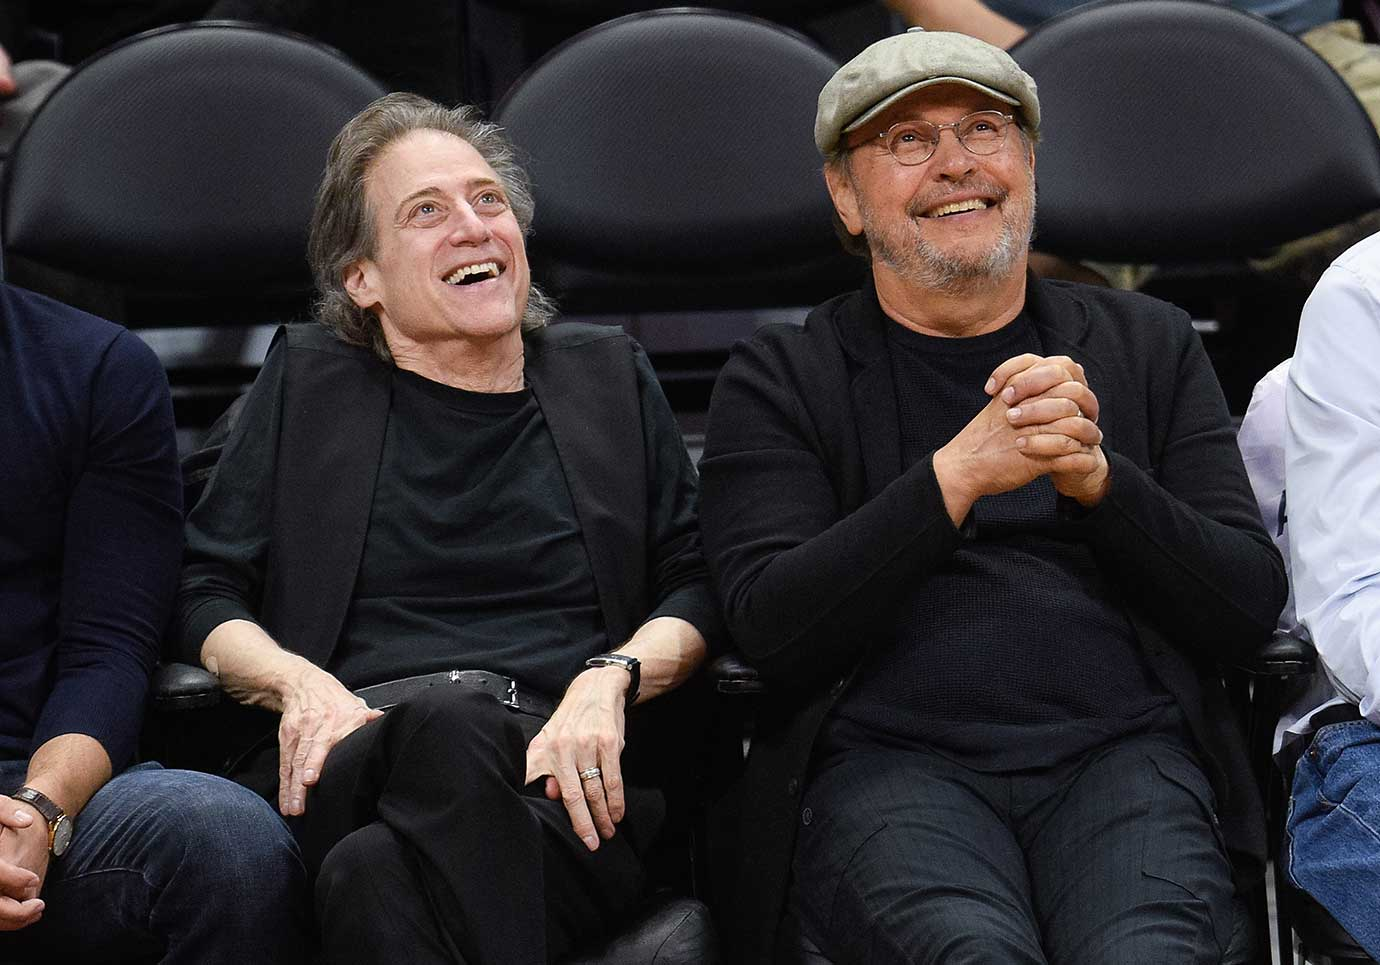 Richard Lewis and Billy Crystal attend the game between the Los Angeles Lakers and the Los Angeles Clippers at Staples Center.